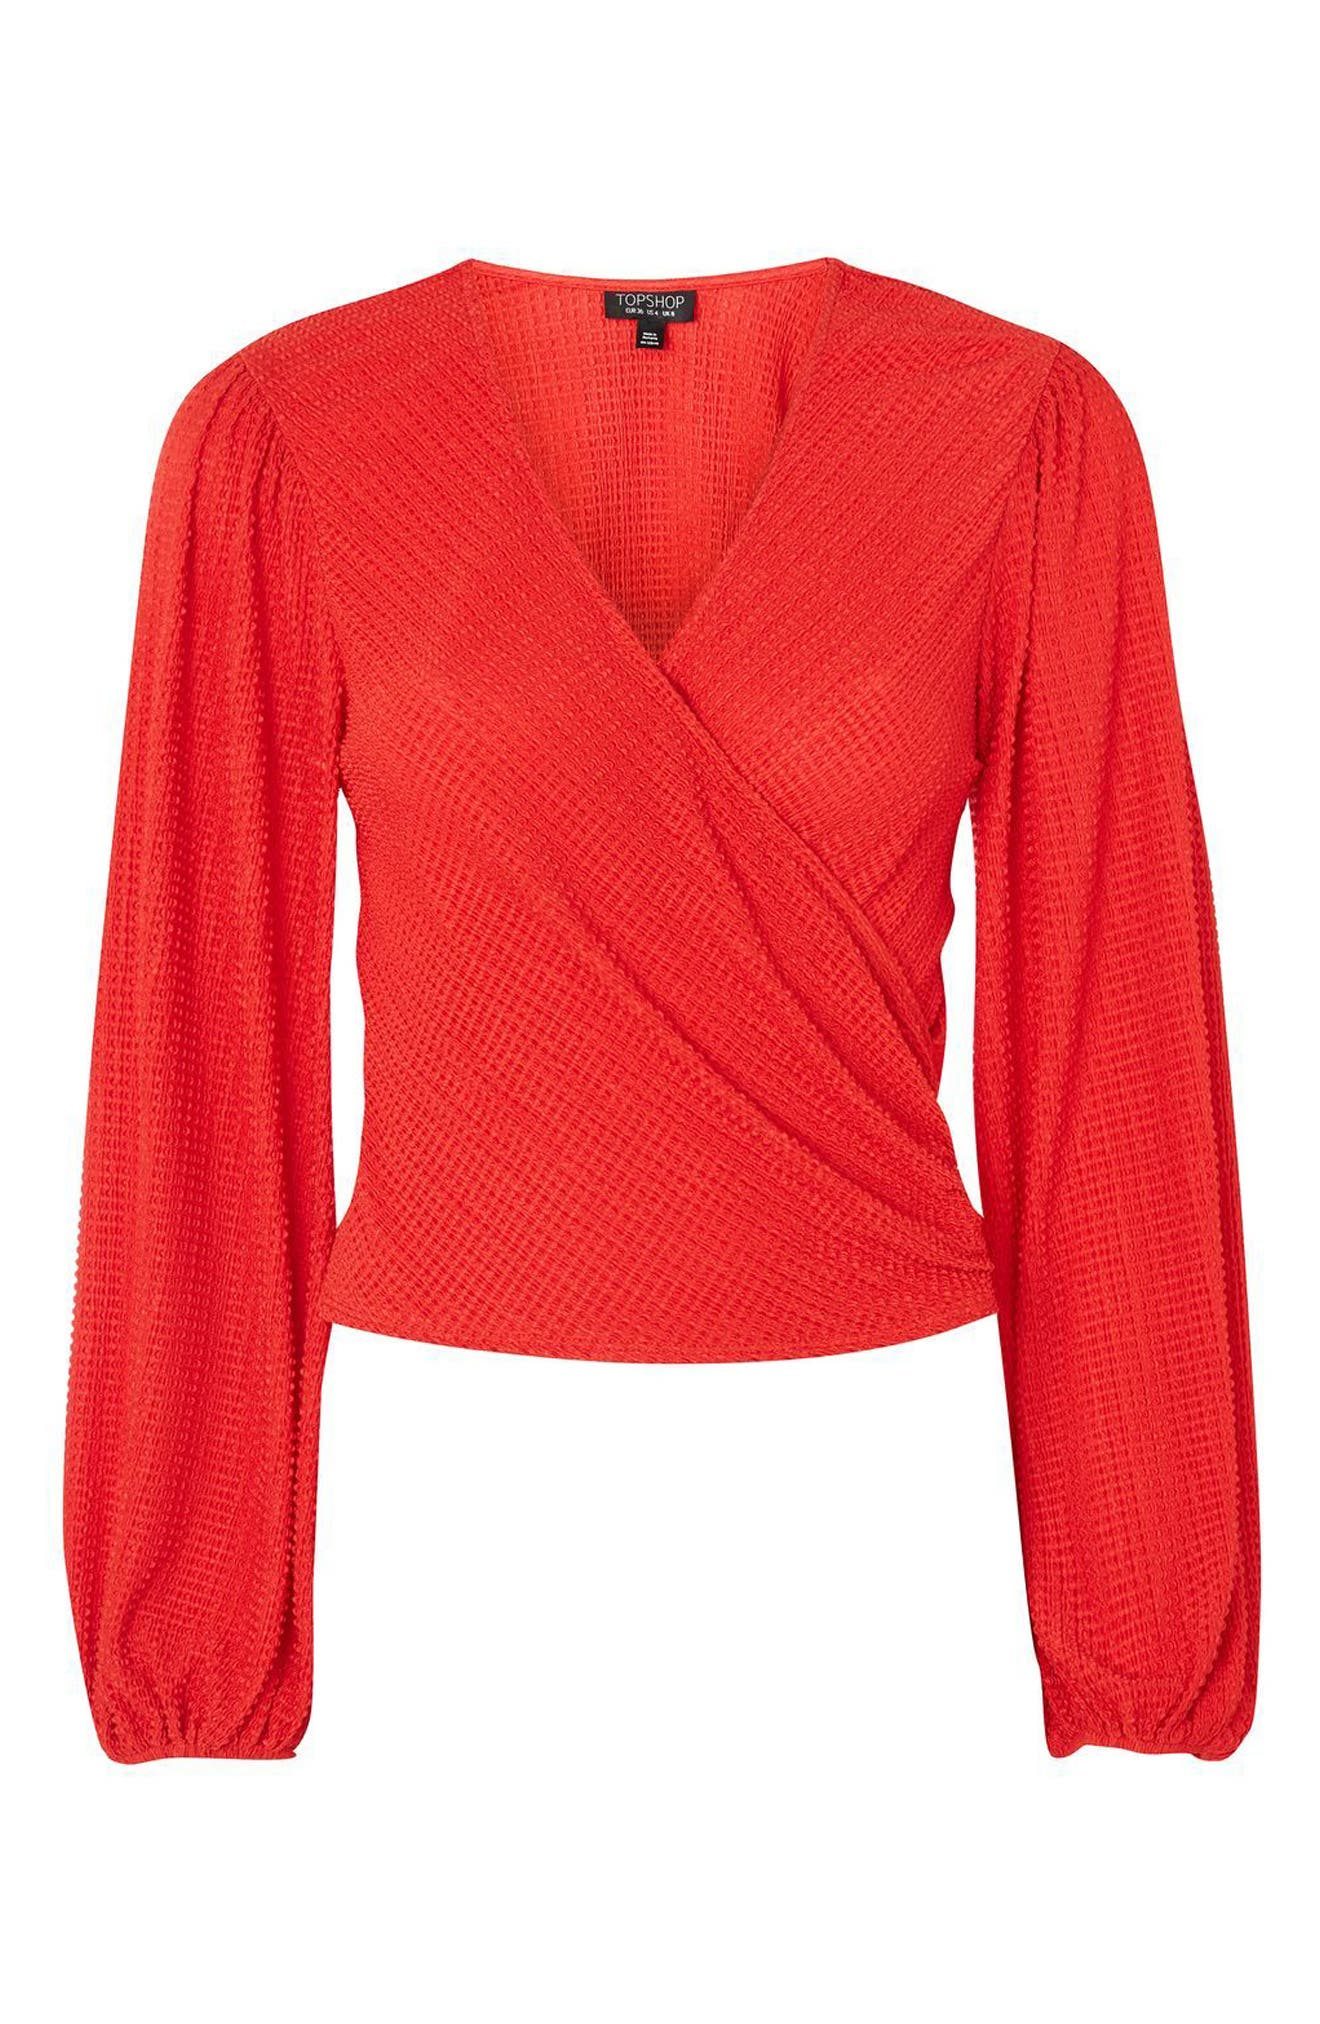 Blouson Sleeve Textured Wrap Top,                             Alternate thumbnail 3, color,                             Red